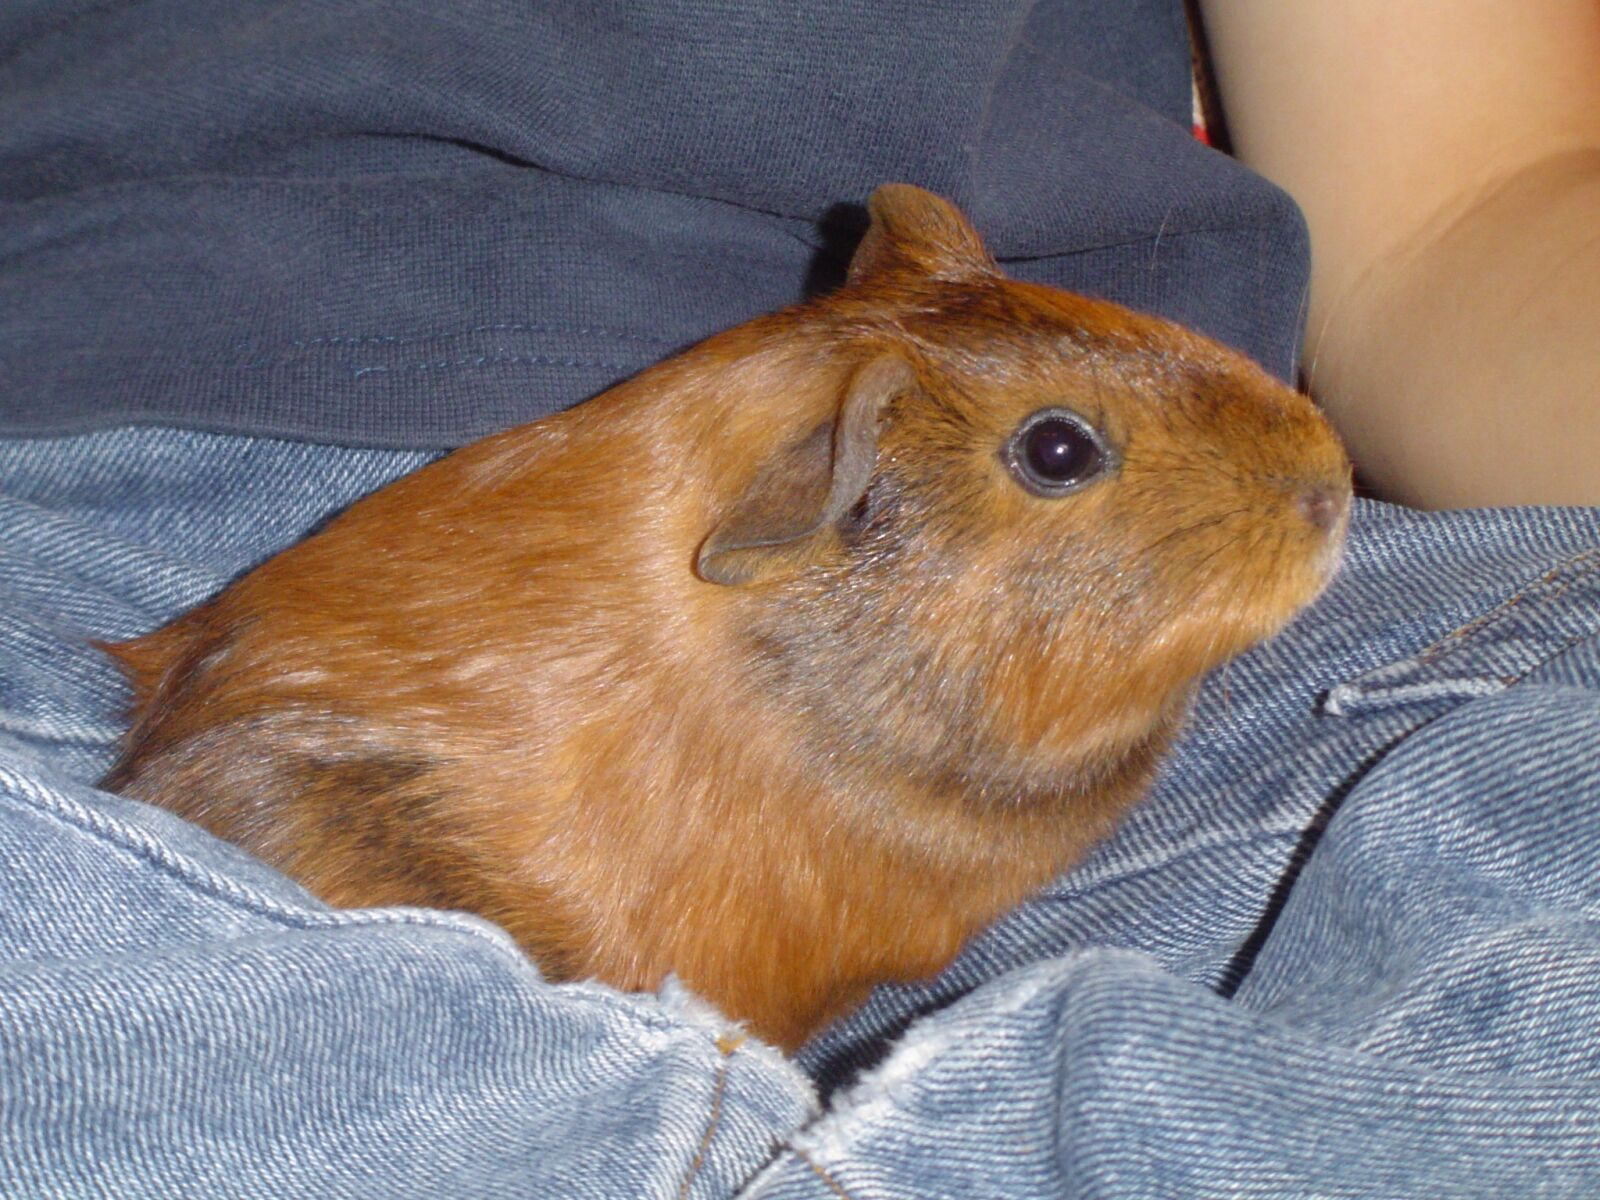 """Sony DSC-P72 sample photo. """"Guinea pig, sweet, small"""" photography"""